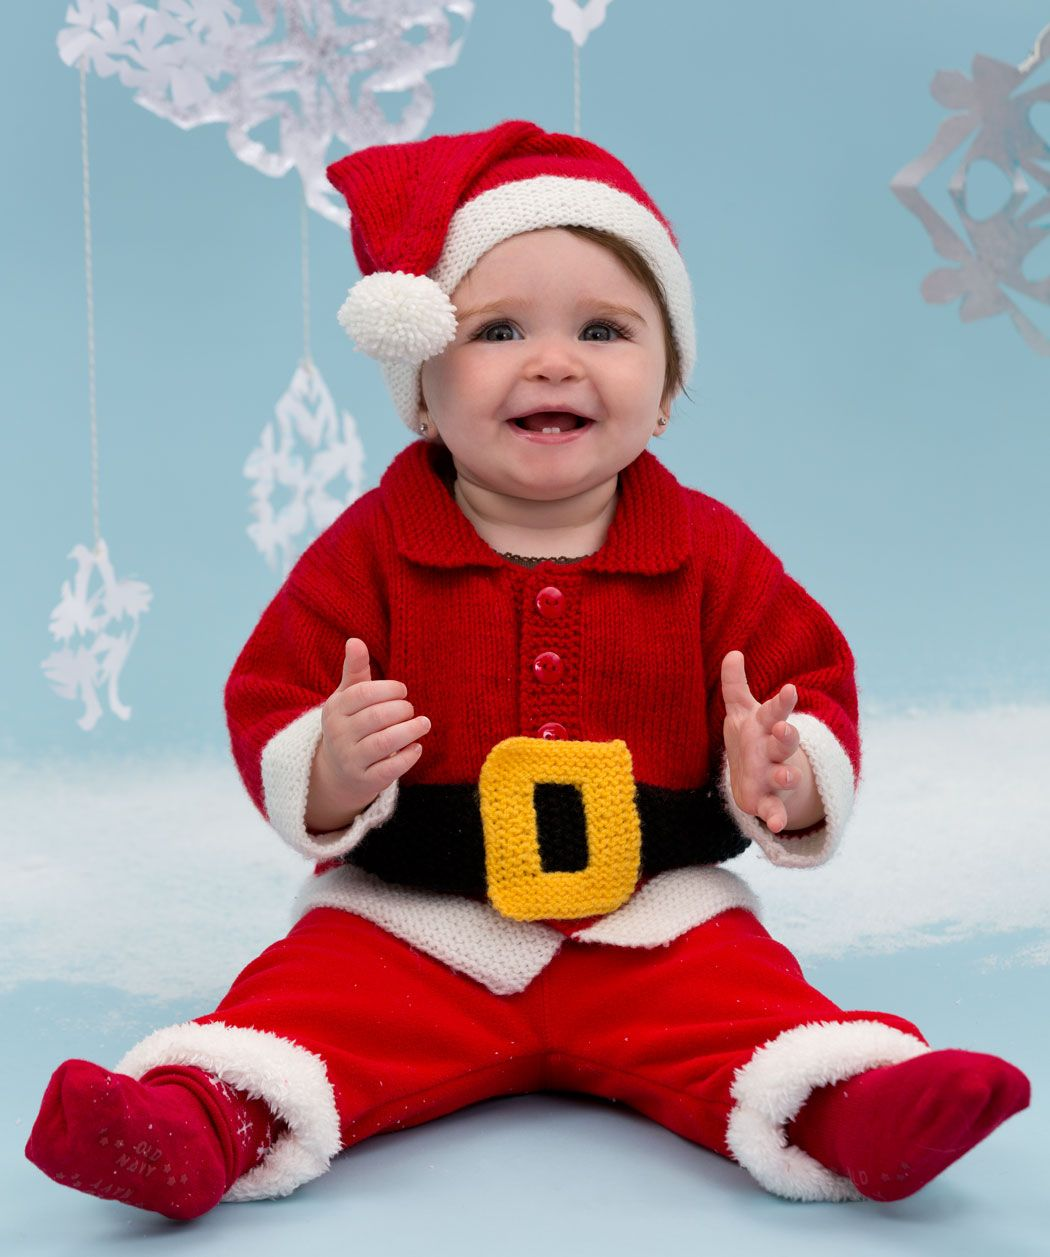 Santa Baby Suit Free Knitting Pattern #AnneGeddes #RedHeart ...